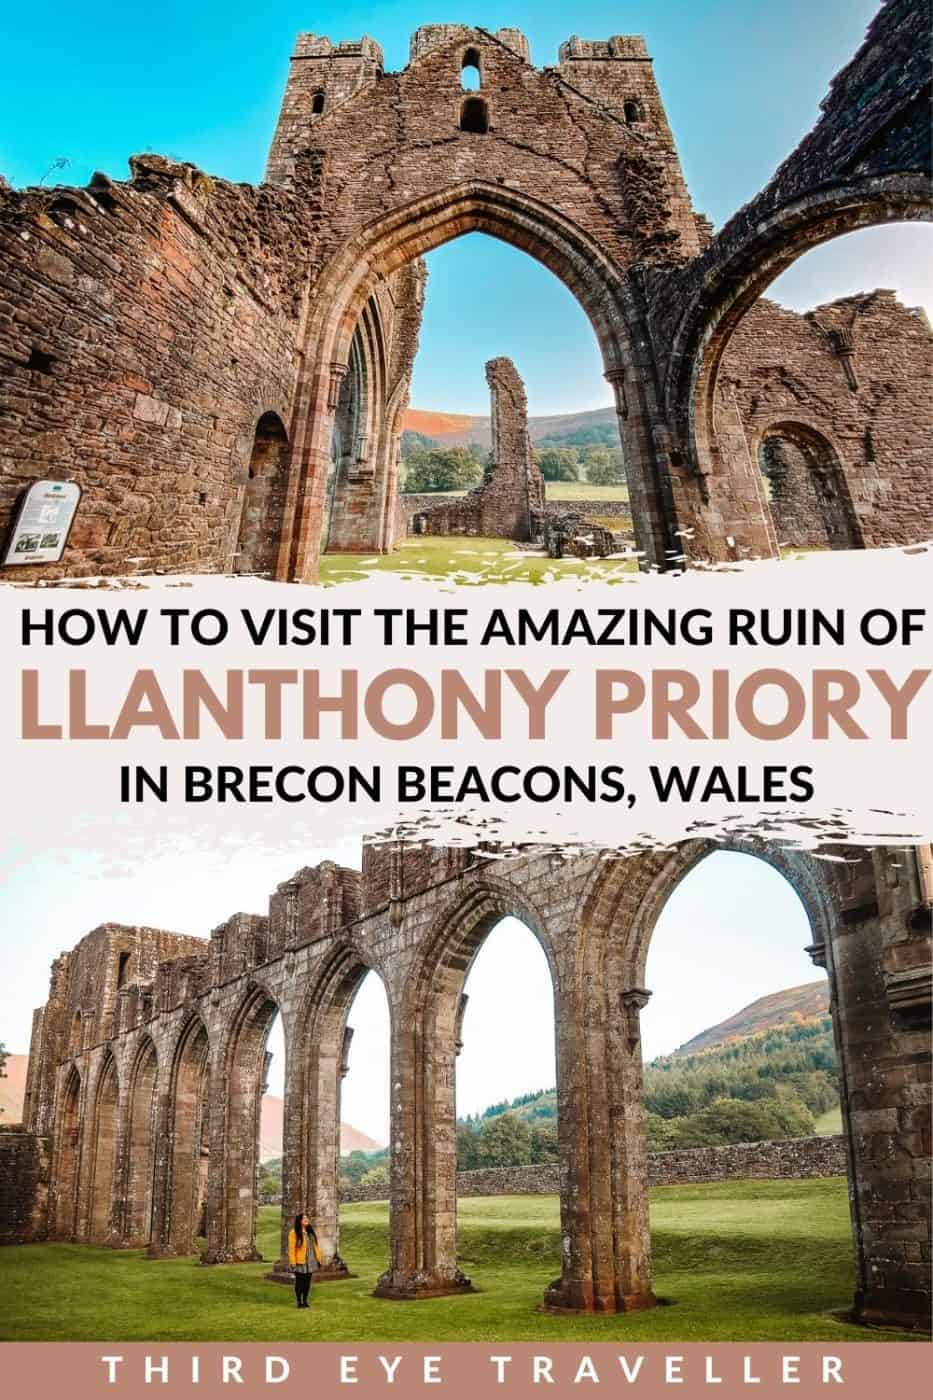 How to visit Llanthony Priory Brecon Beacons Wales